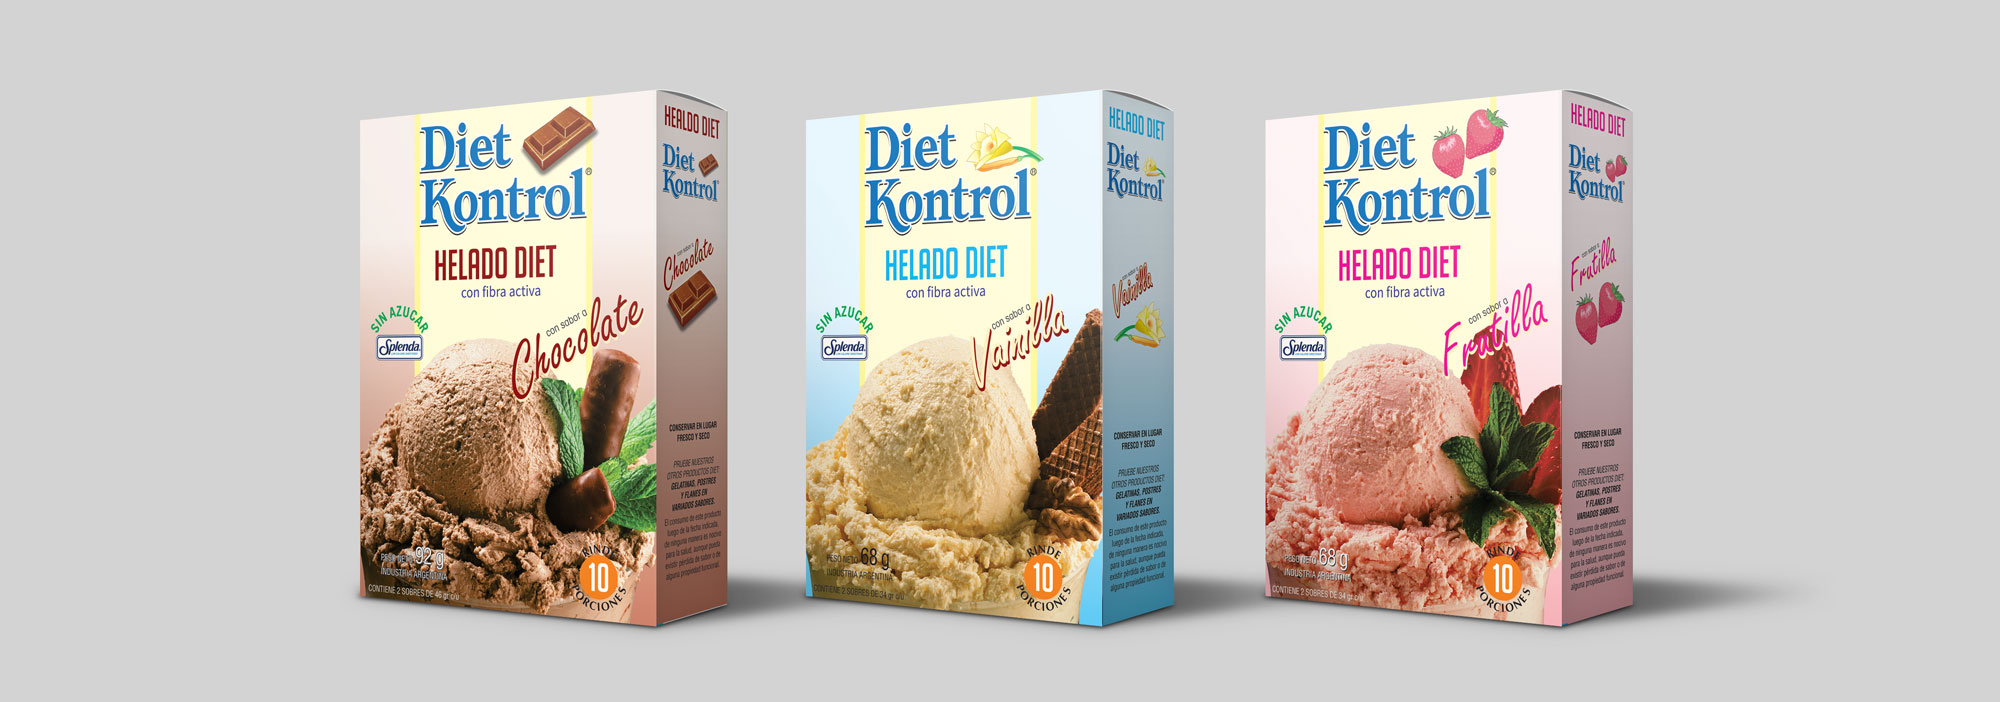 Carballo Design productos Diet Kontrol